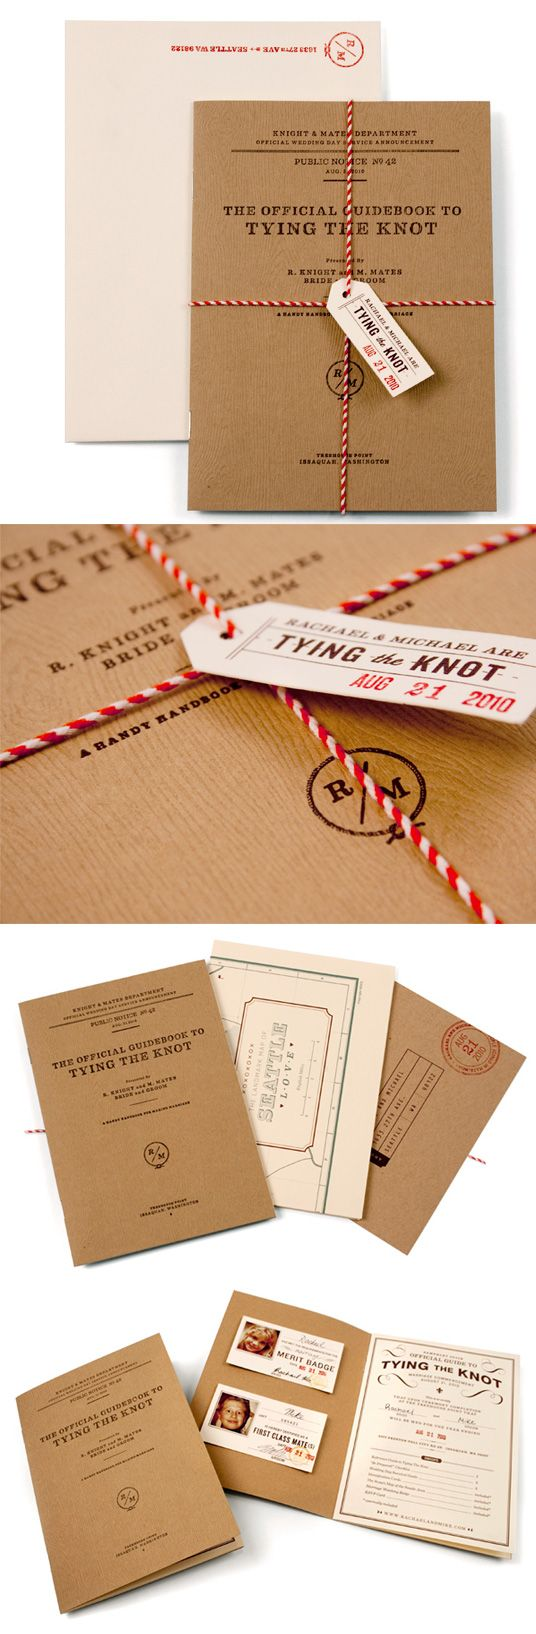 tying the knot- cute! #invitation #wedding